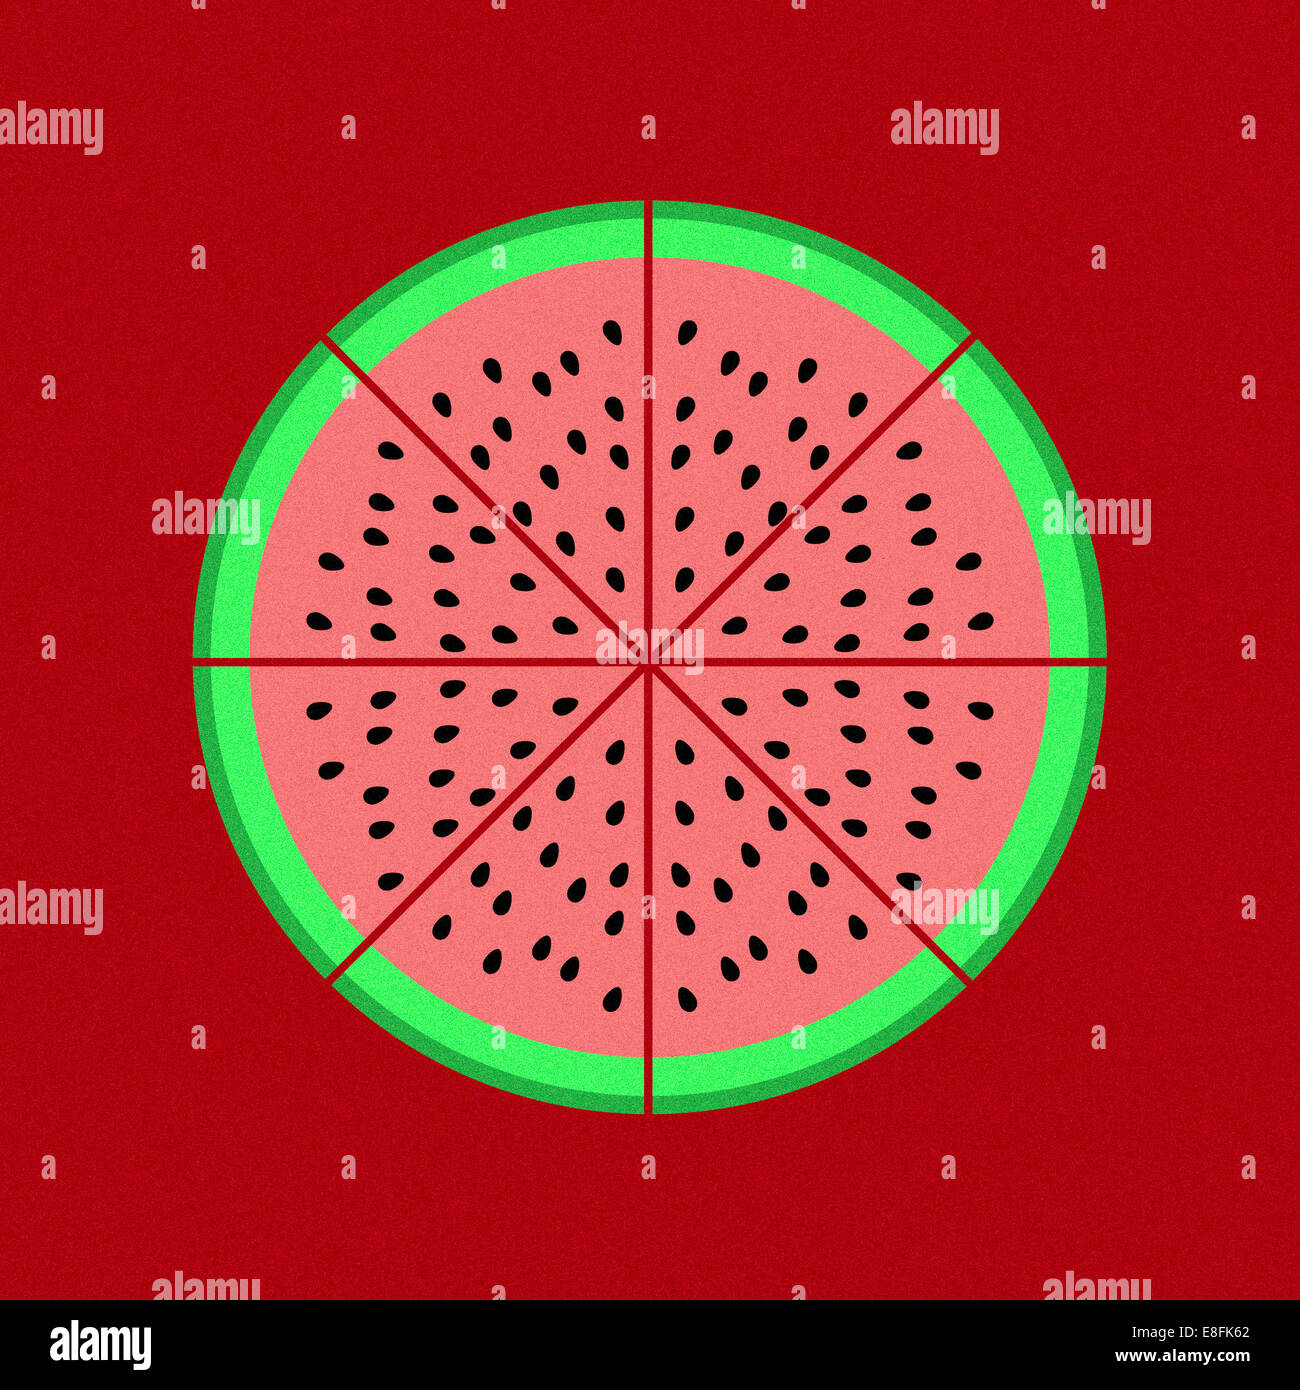 Pie chart graphic on red background - Stock Image